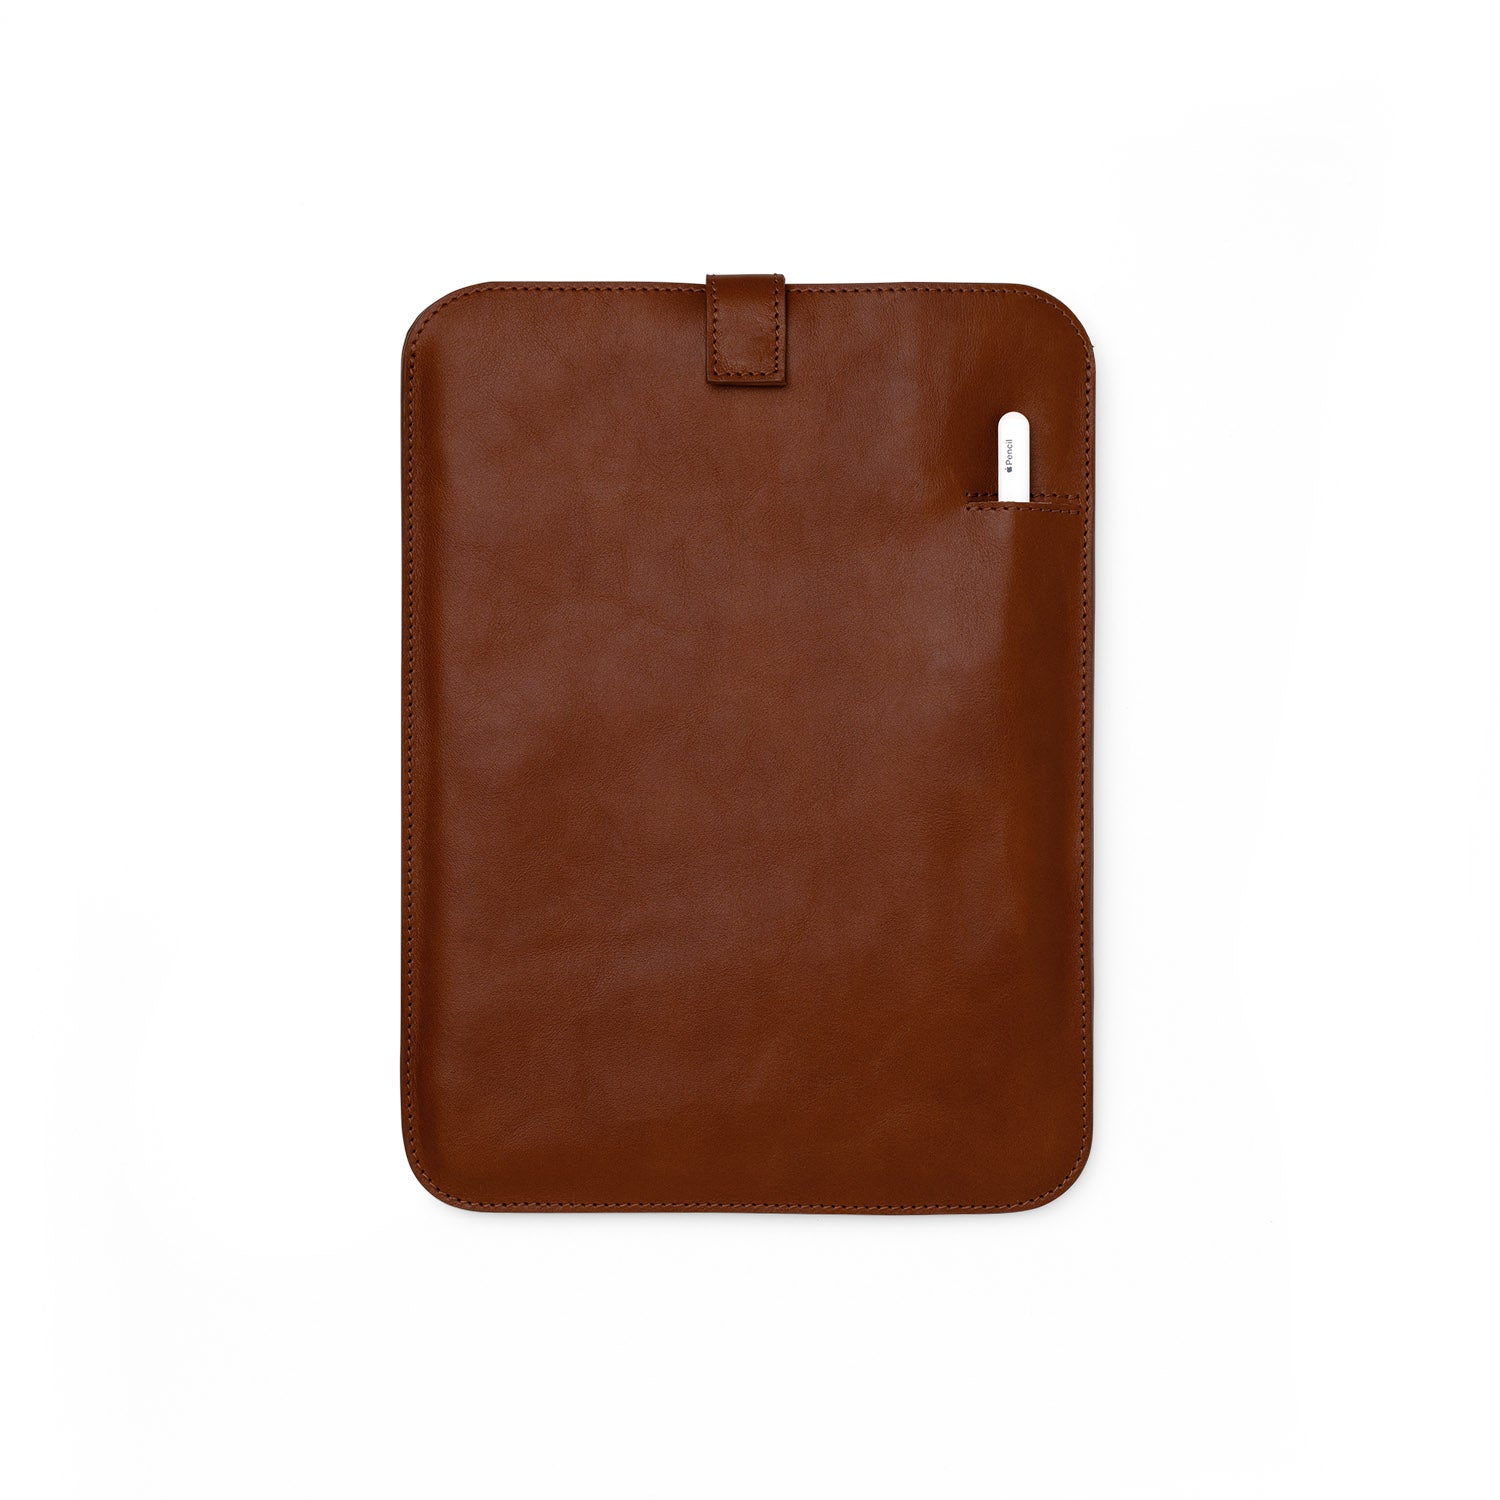 TABLET SLEEVE 11""